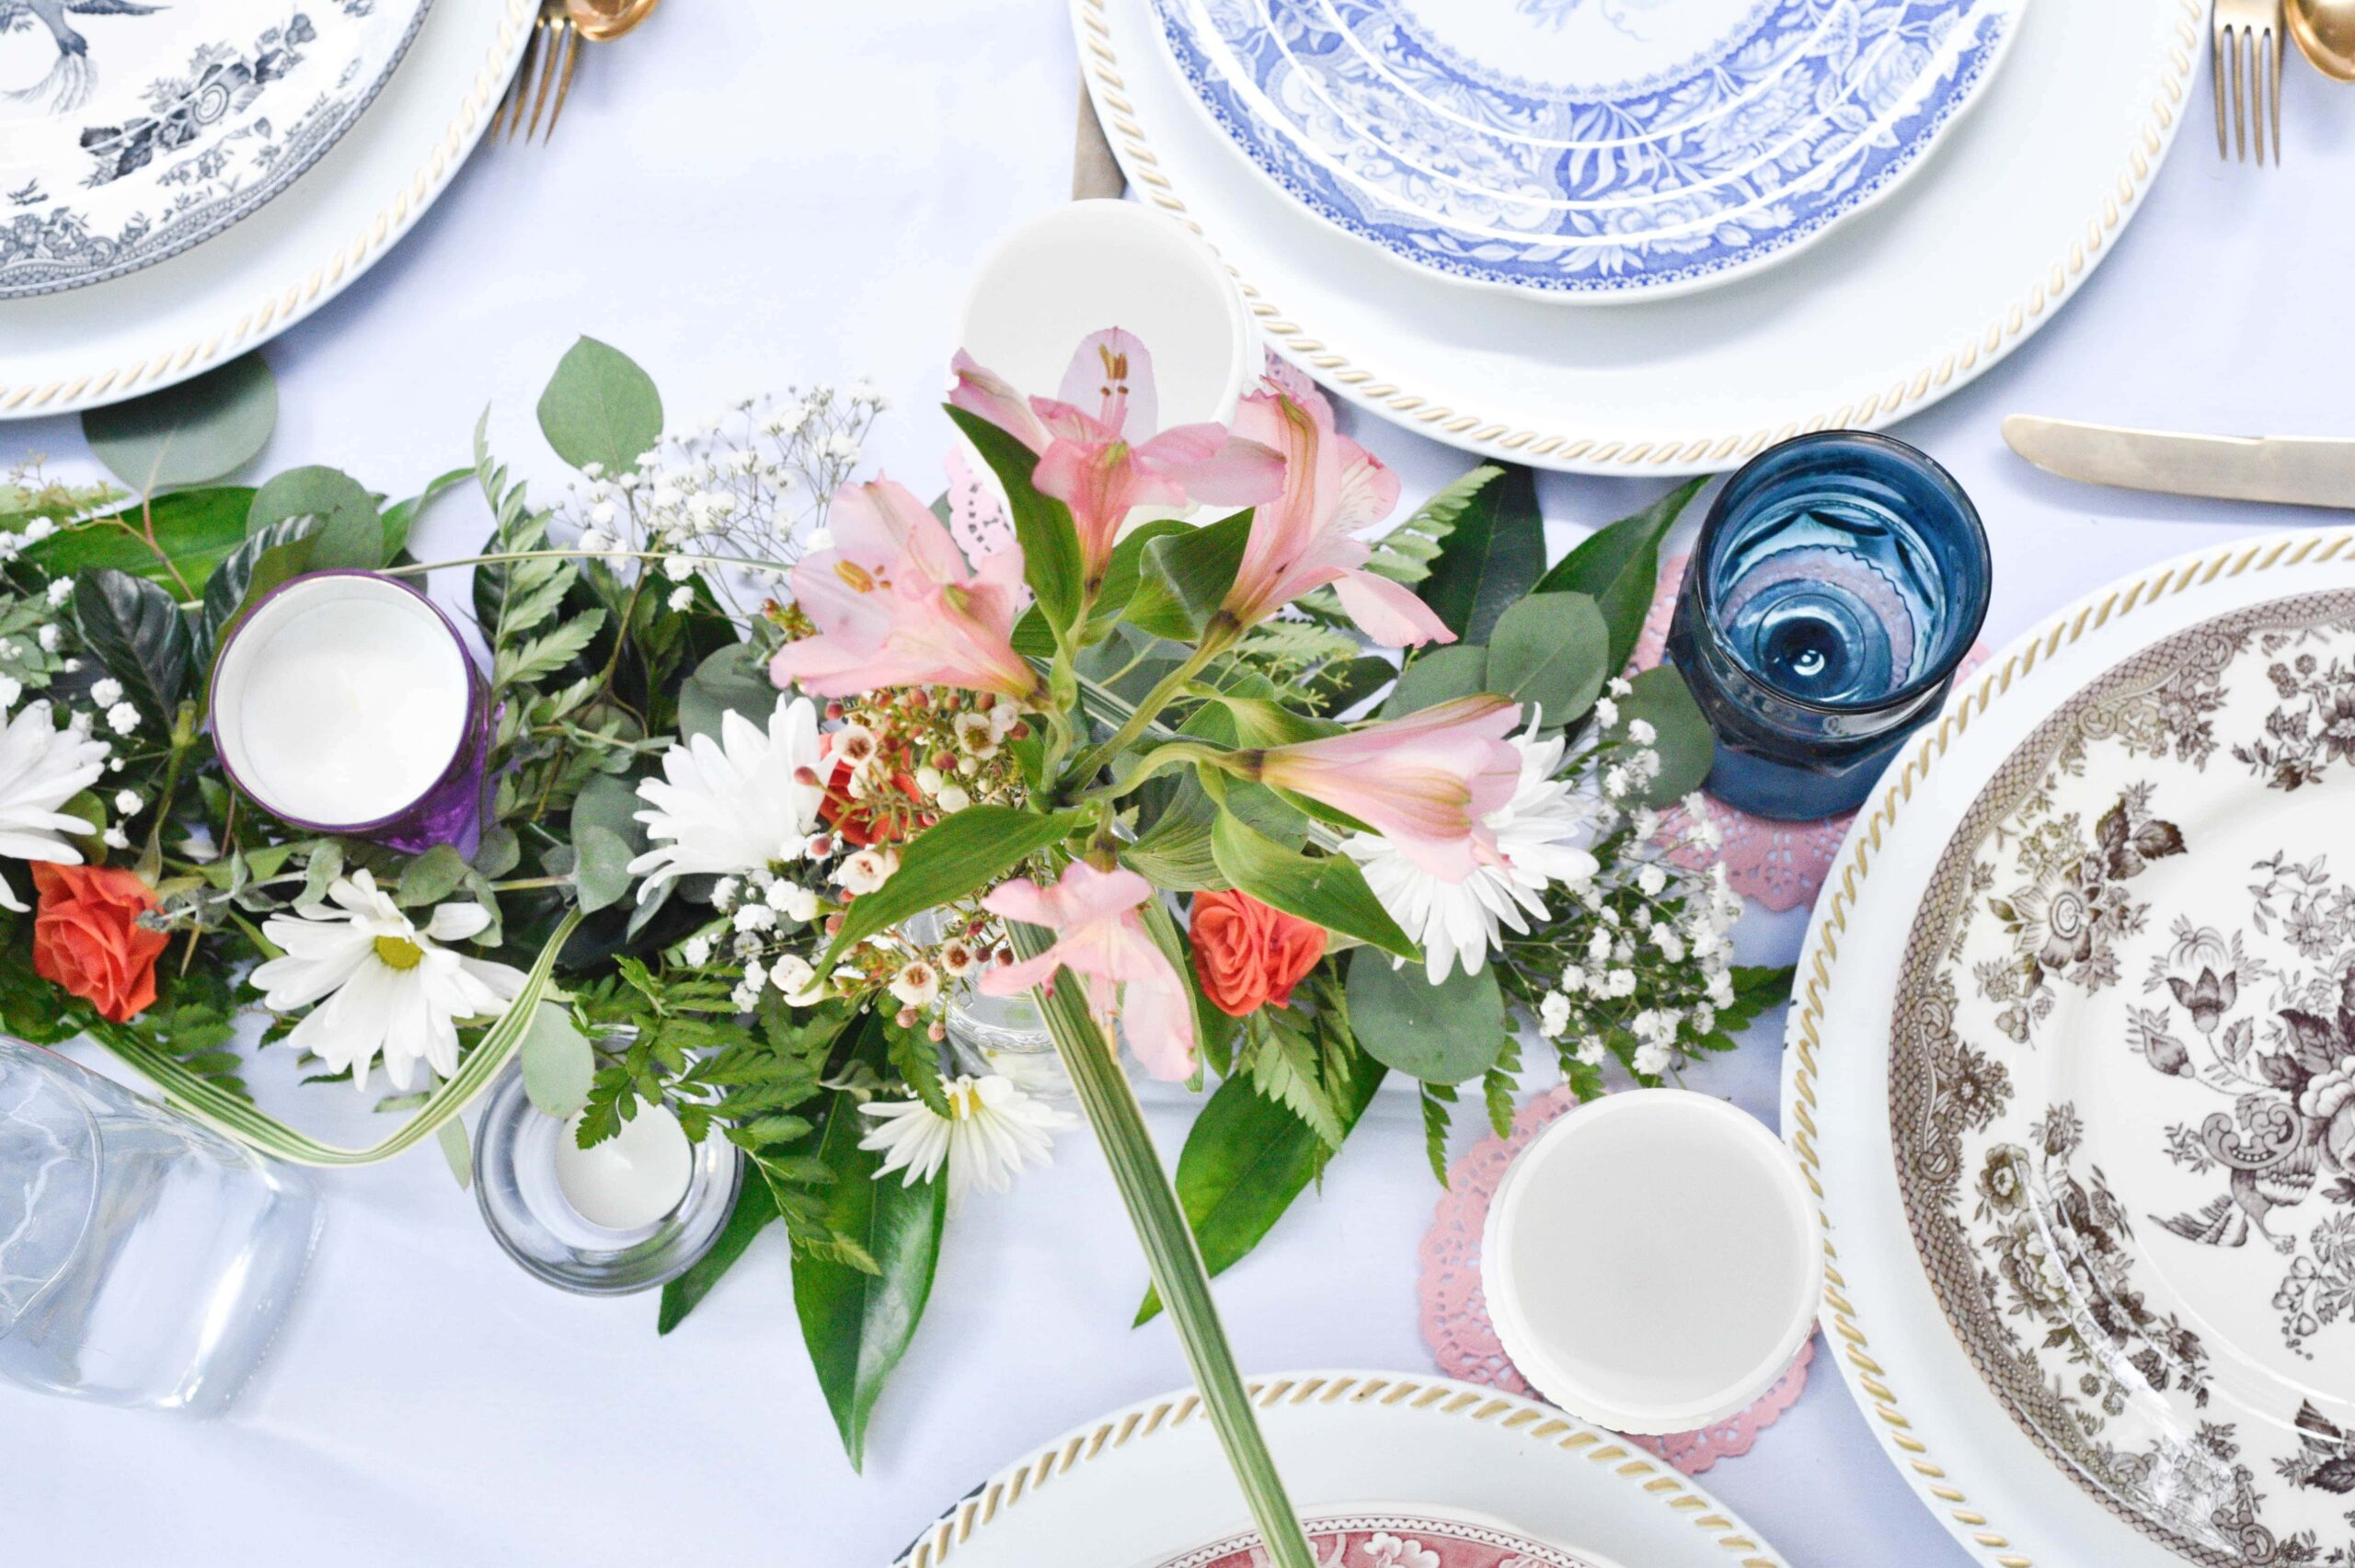 Easy tips to follow for a perfect summer table setting for evening or morning brunches this & Perfect Summer Table Setting - 5 Essential Tips for Summer Entertaining